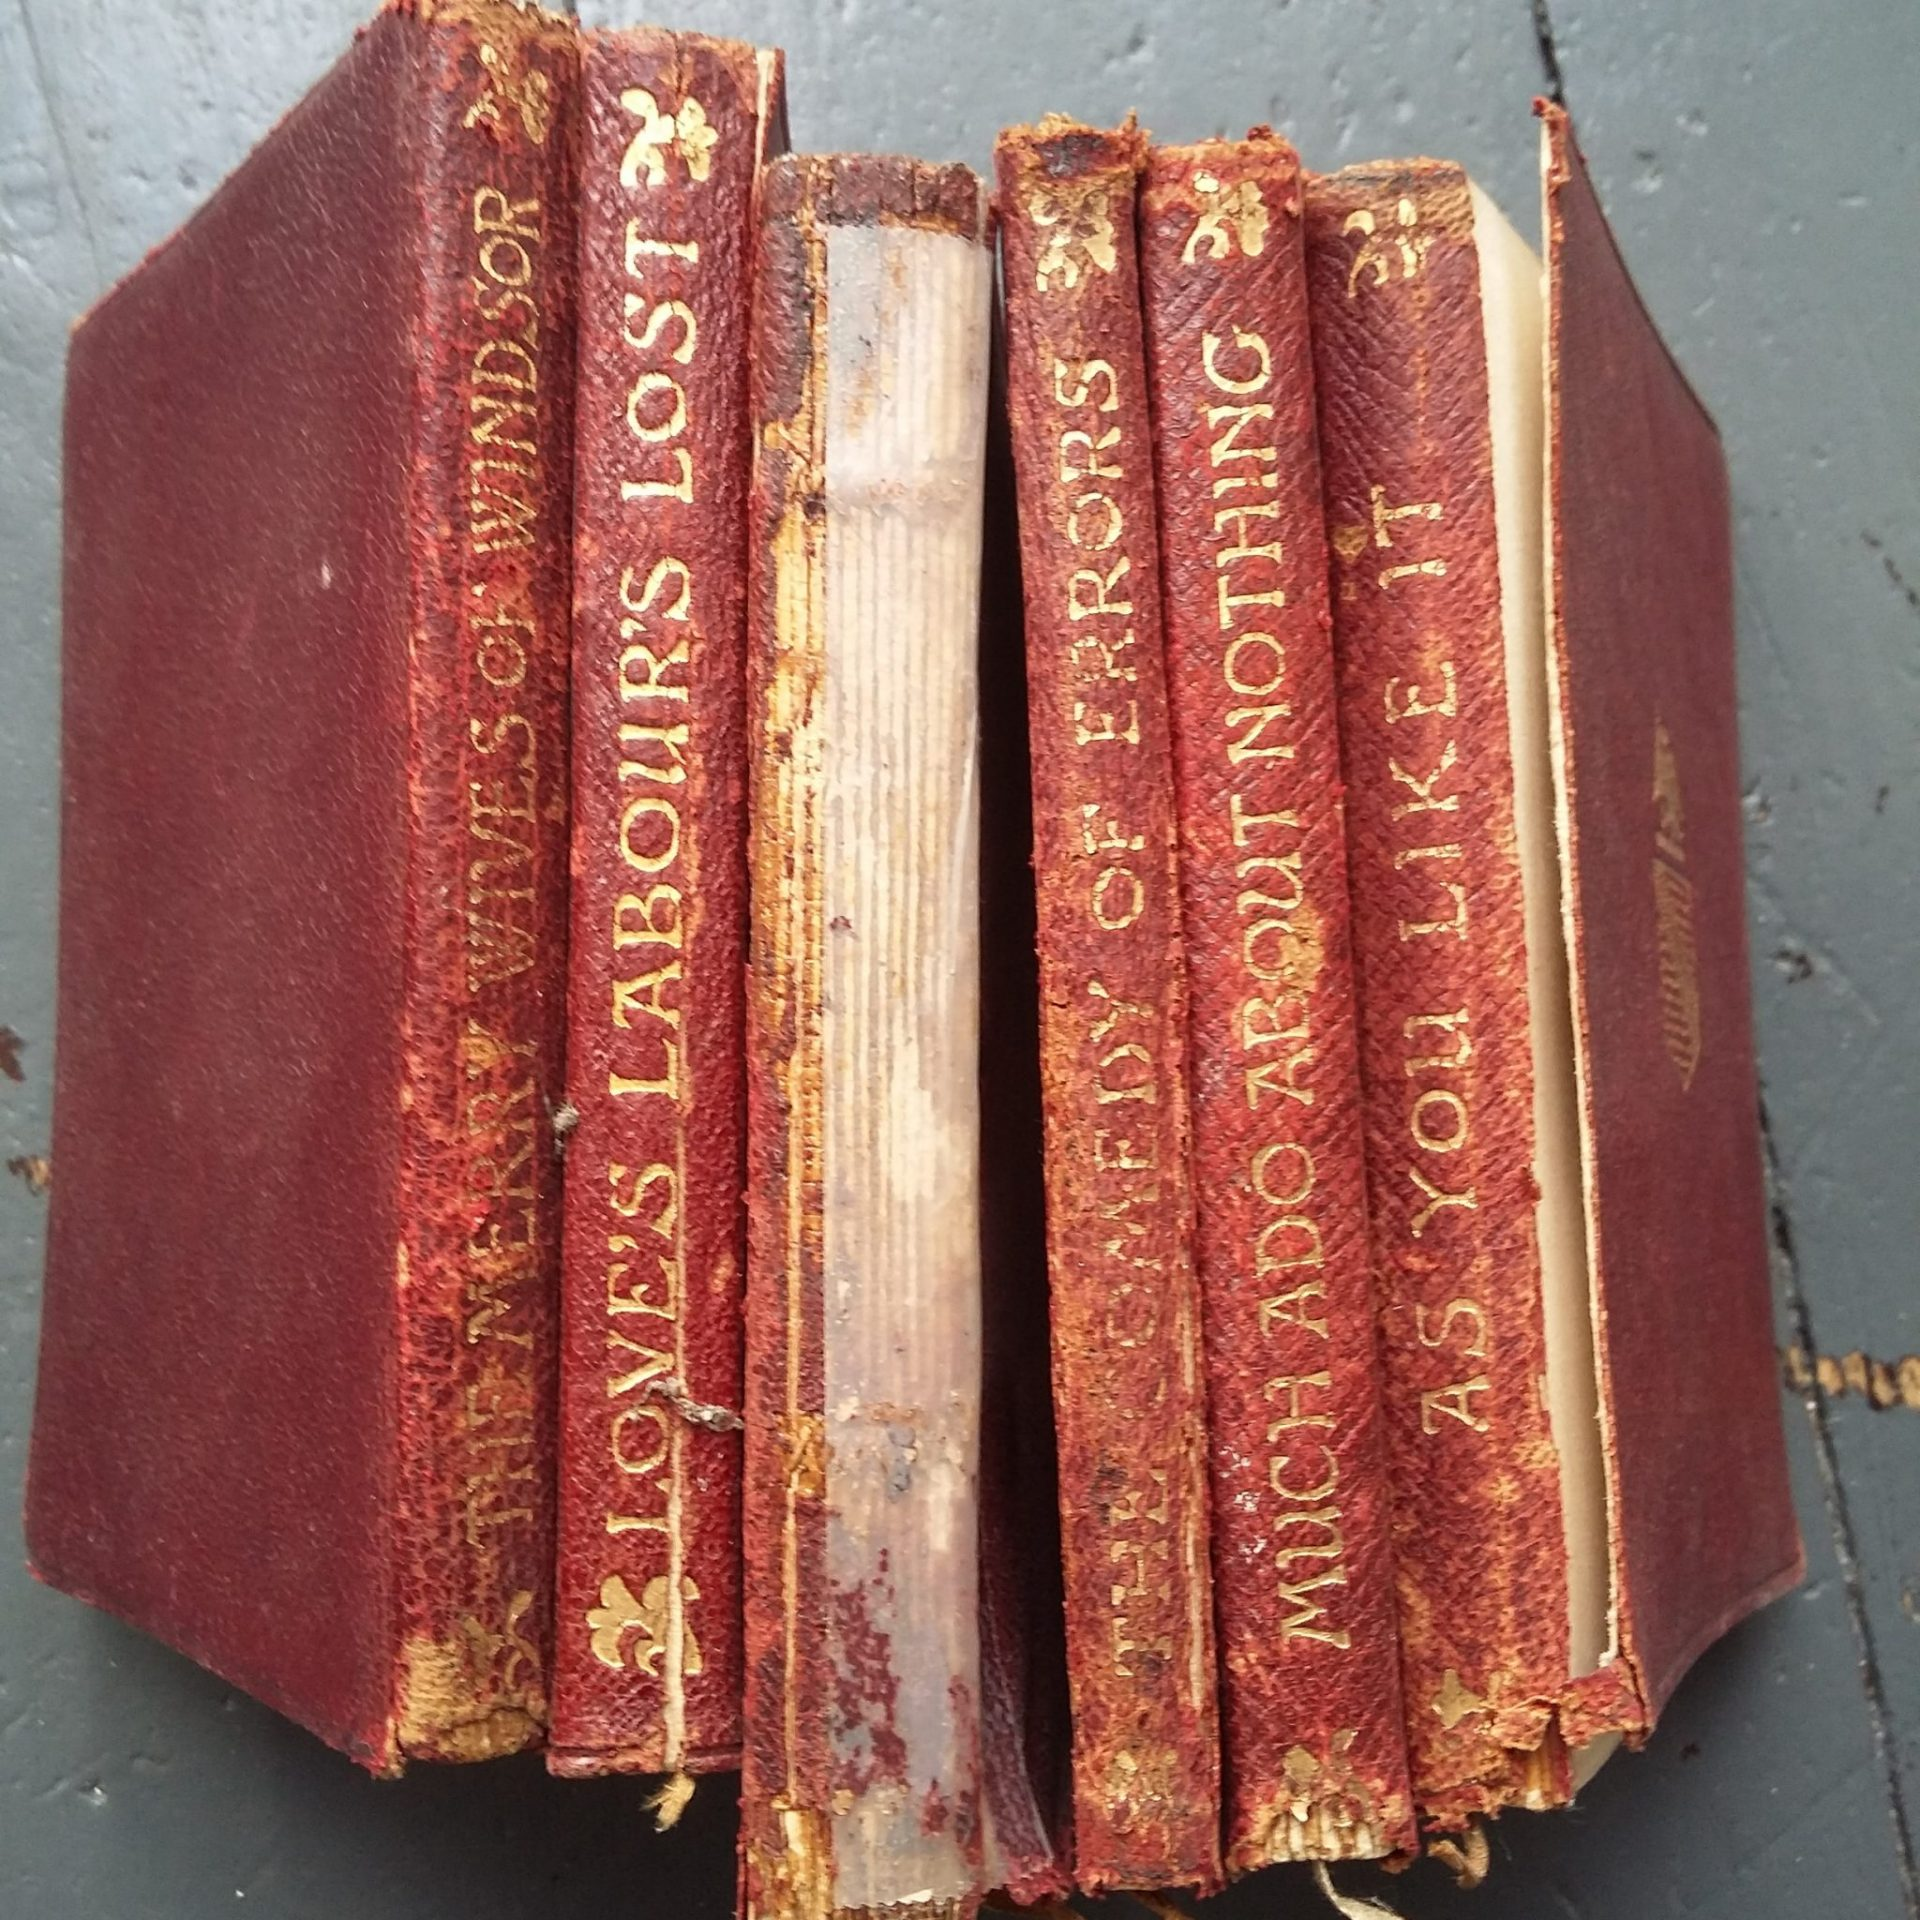 Book Care and Repair bring your well loved book to the bindery and chat to Anachronalia about book care.